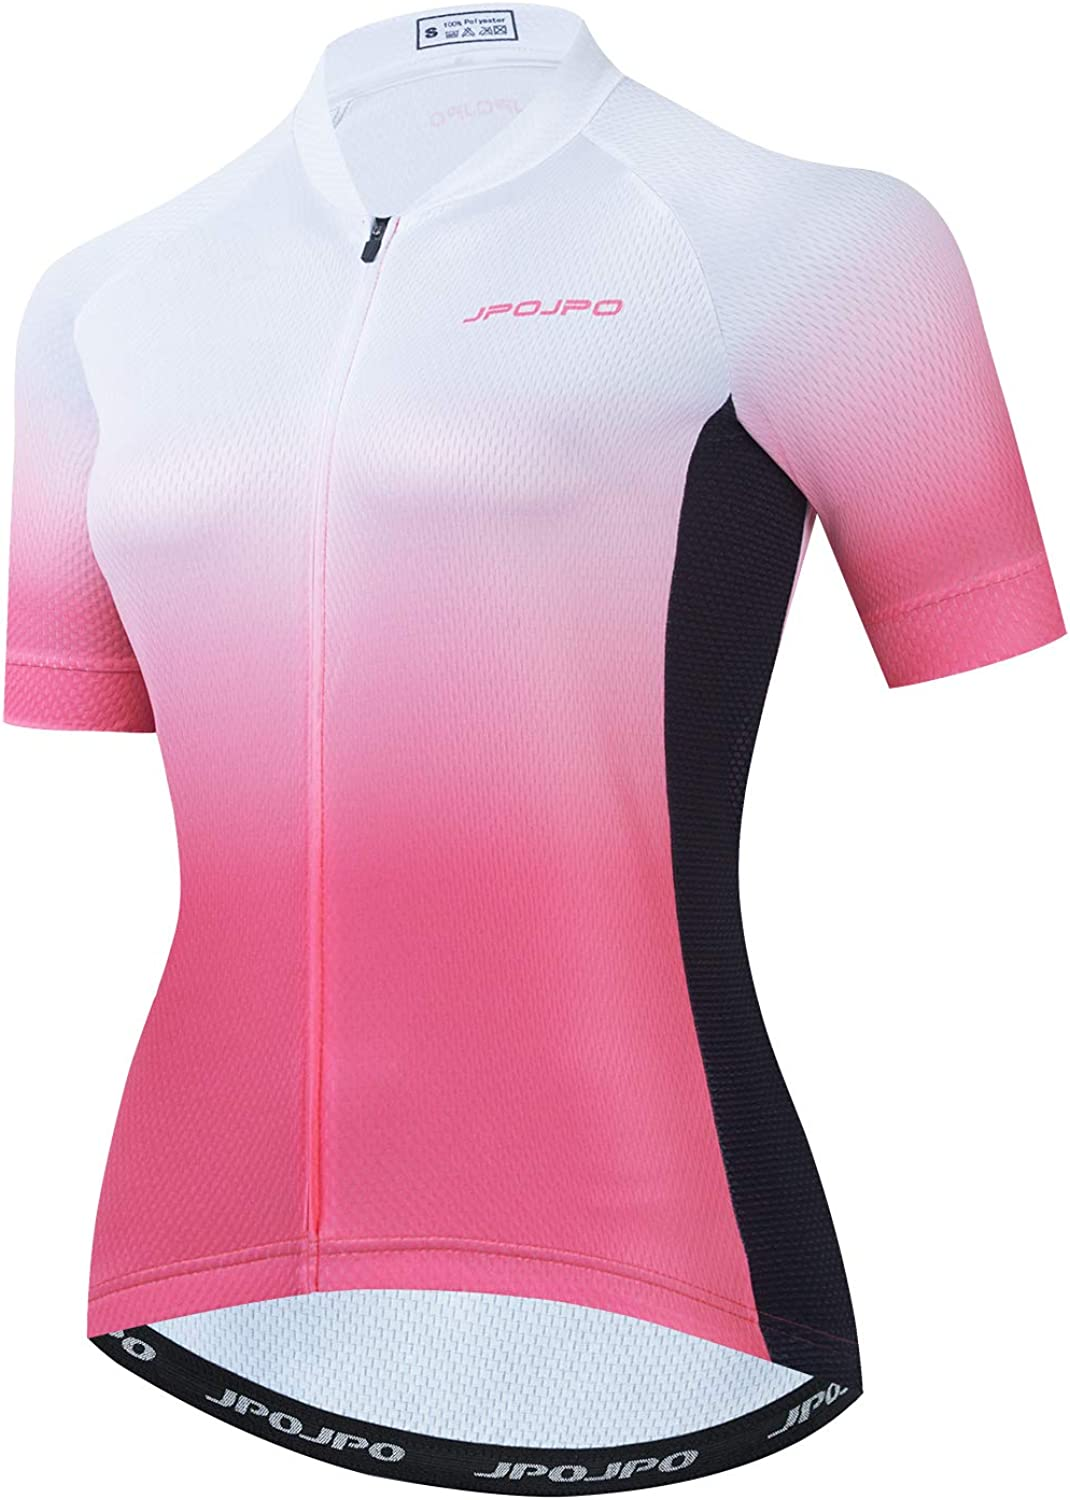 JPOJPO Women's Free shipping on posting reviews Cycling Jersey Short Clothing MTB Bike Sales of SALE items from new works Sleeve Ref